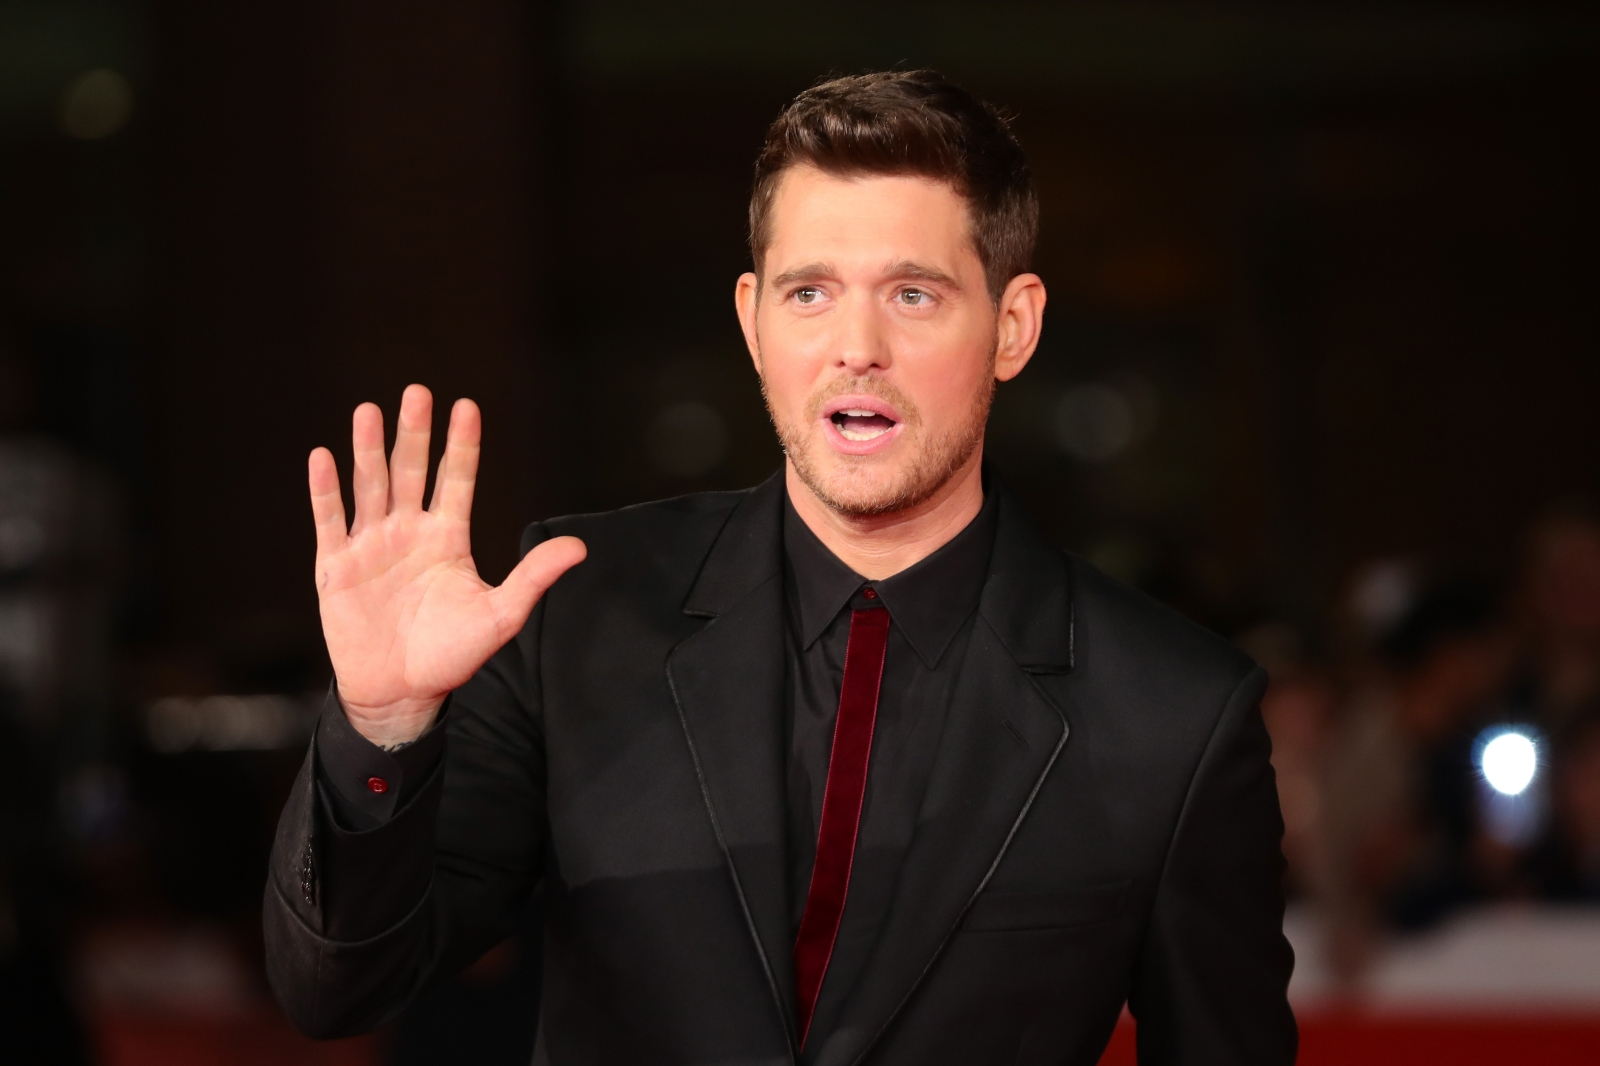 michael buble - photo #12